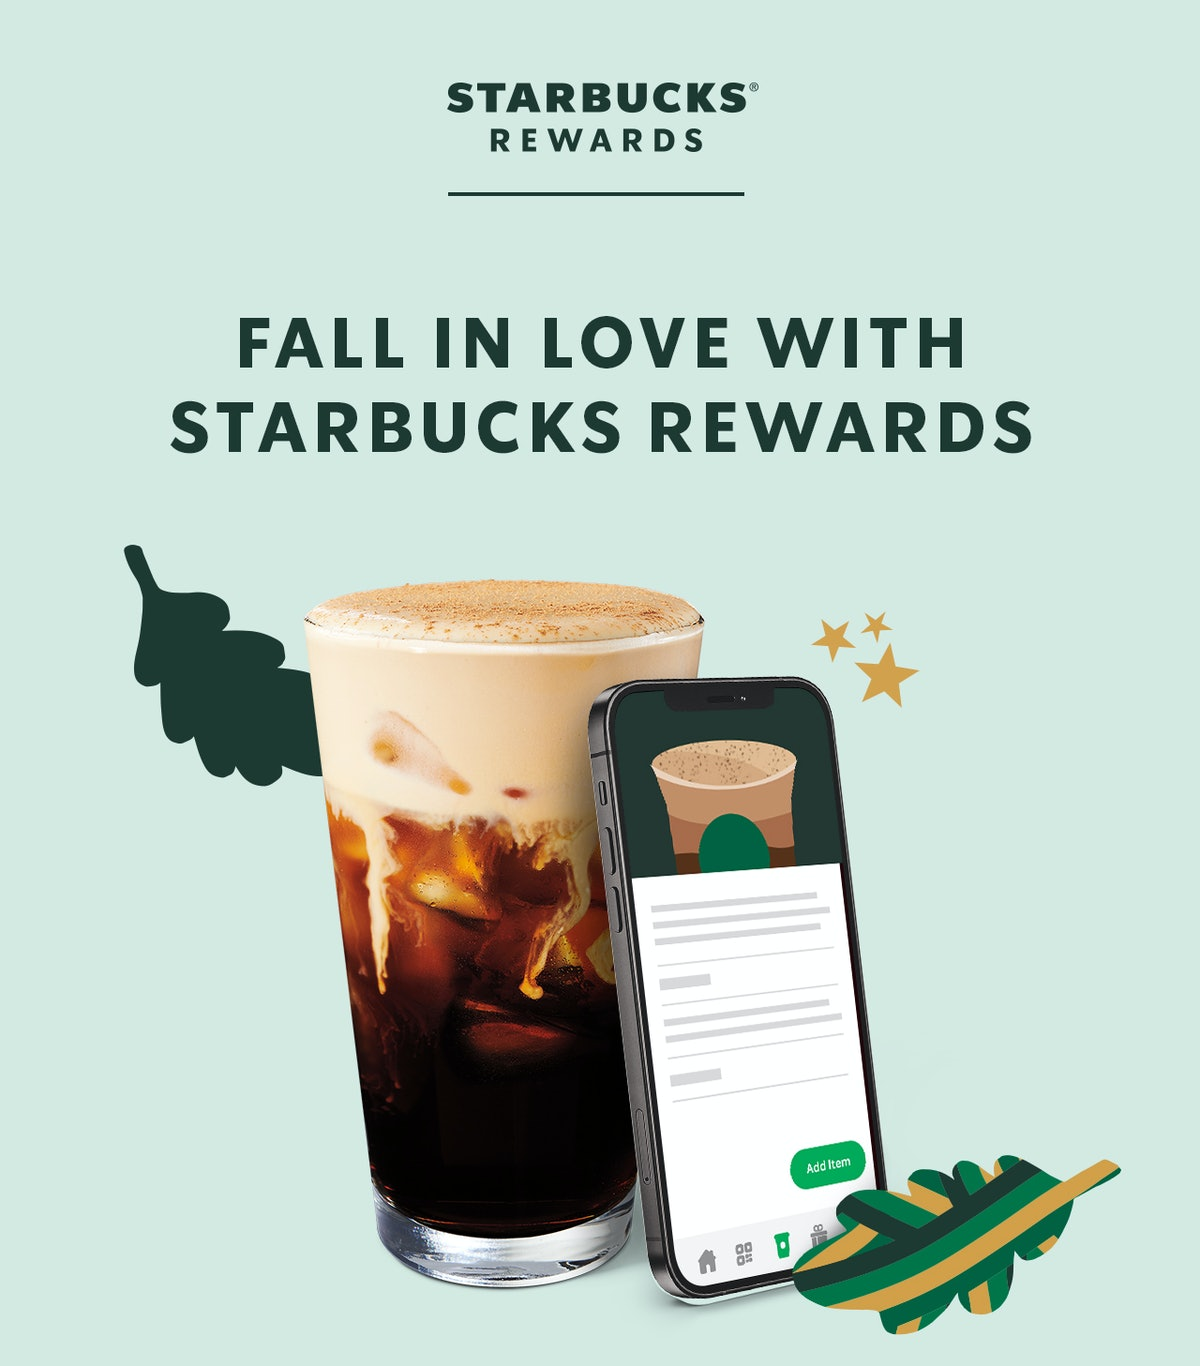 Starbucks' Sept. 22 free coffee BOGO deal is for the first day of fall.